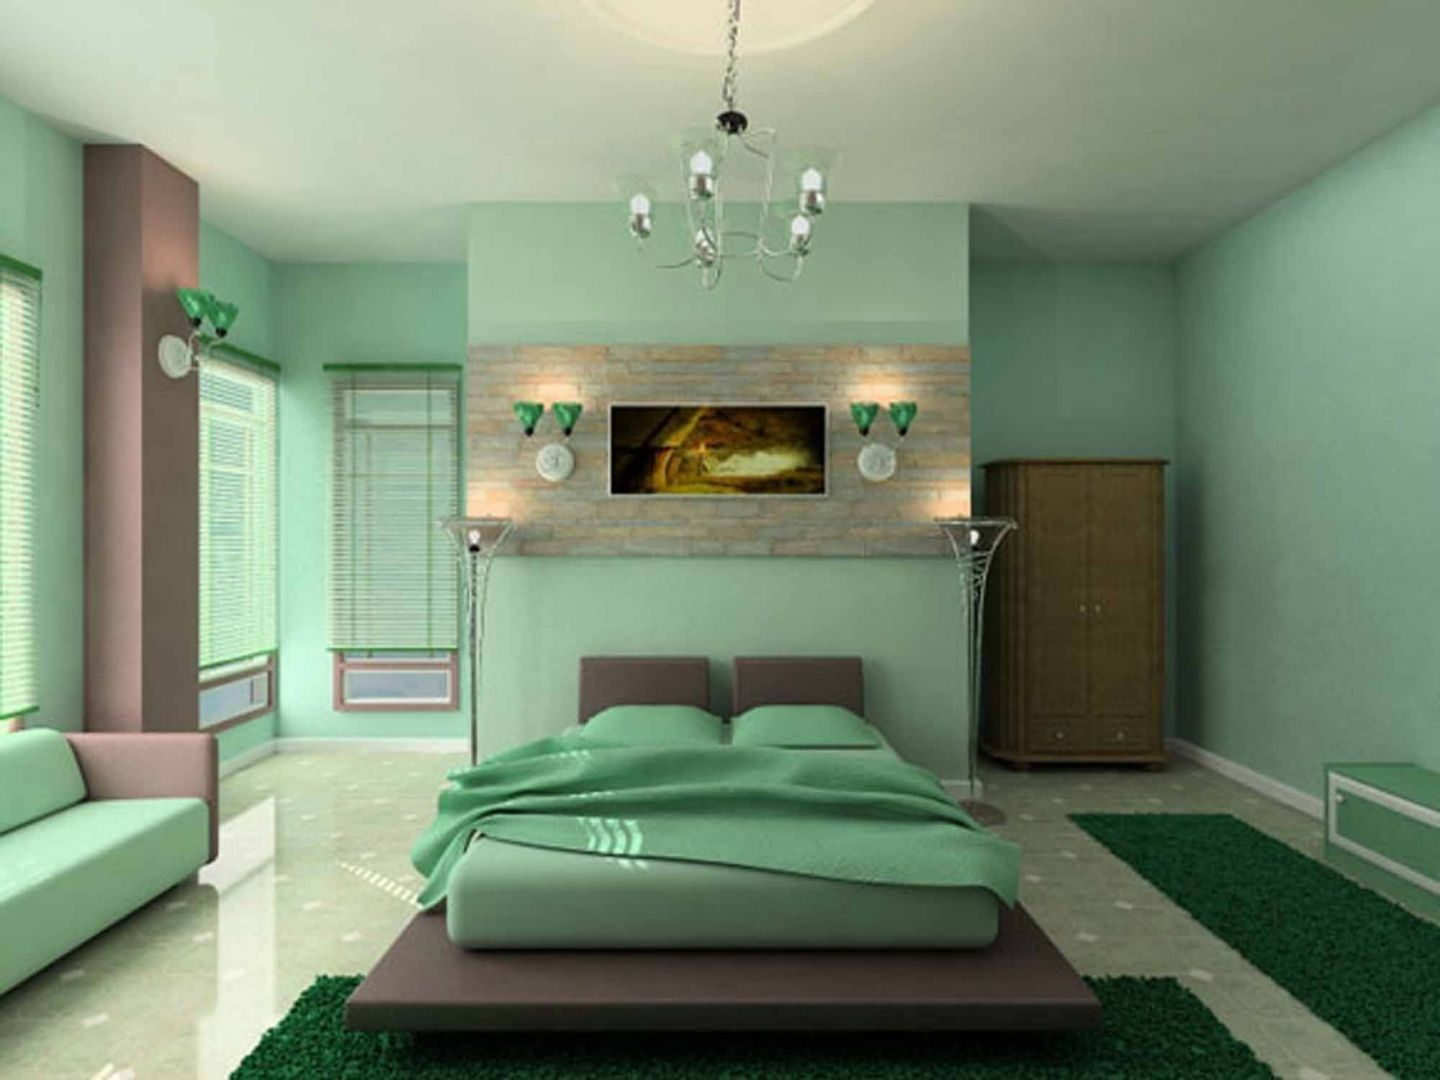 Cool beds for teenage girls - Cool And Feminine Teen Girls Room Ideas Entrancing Sea Green Teen Girls Room Design With